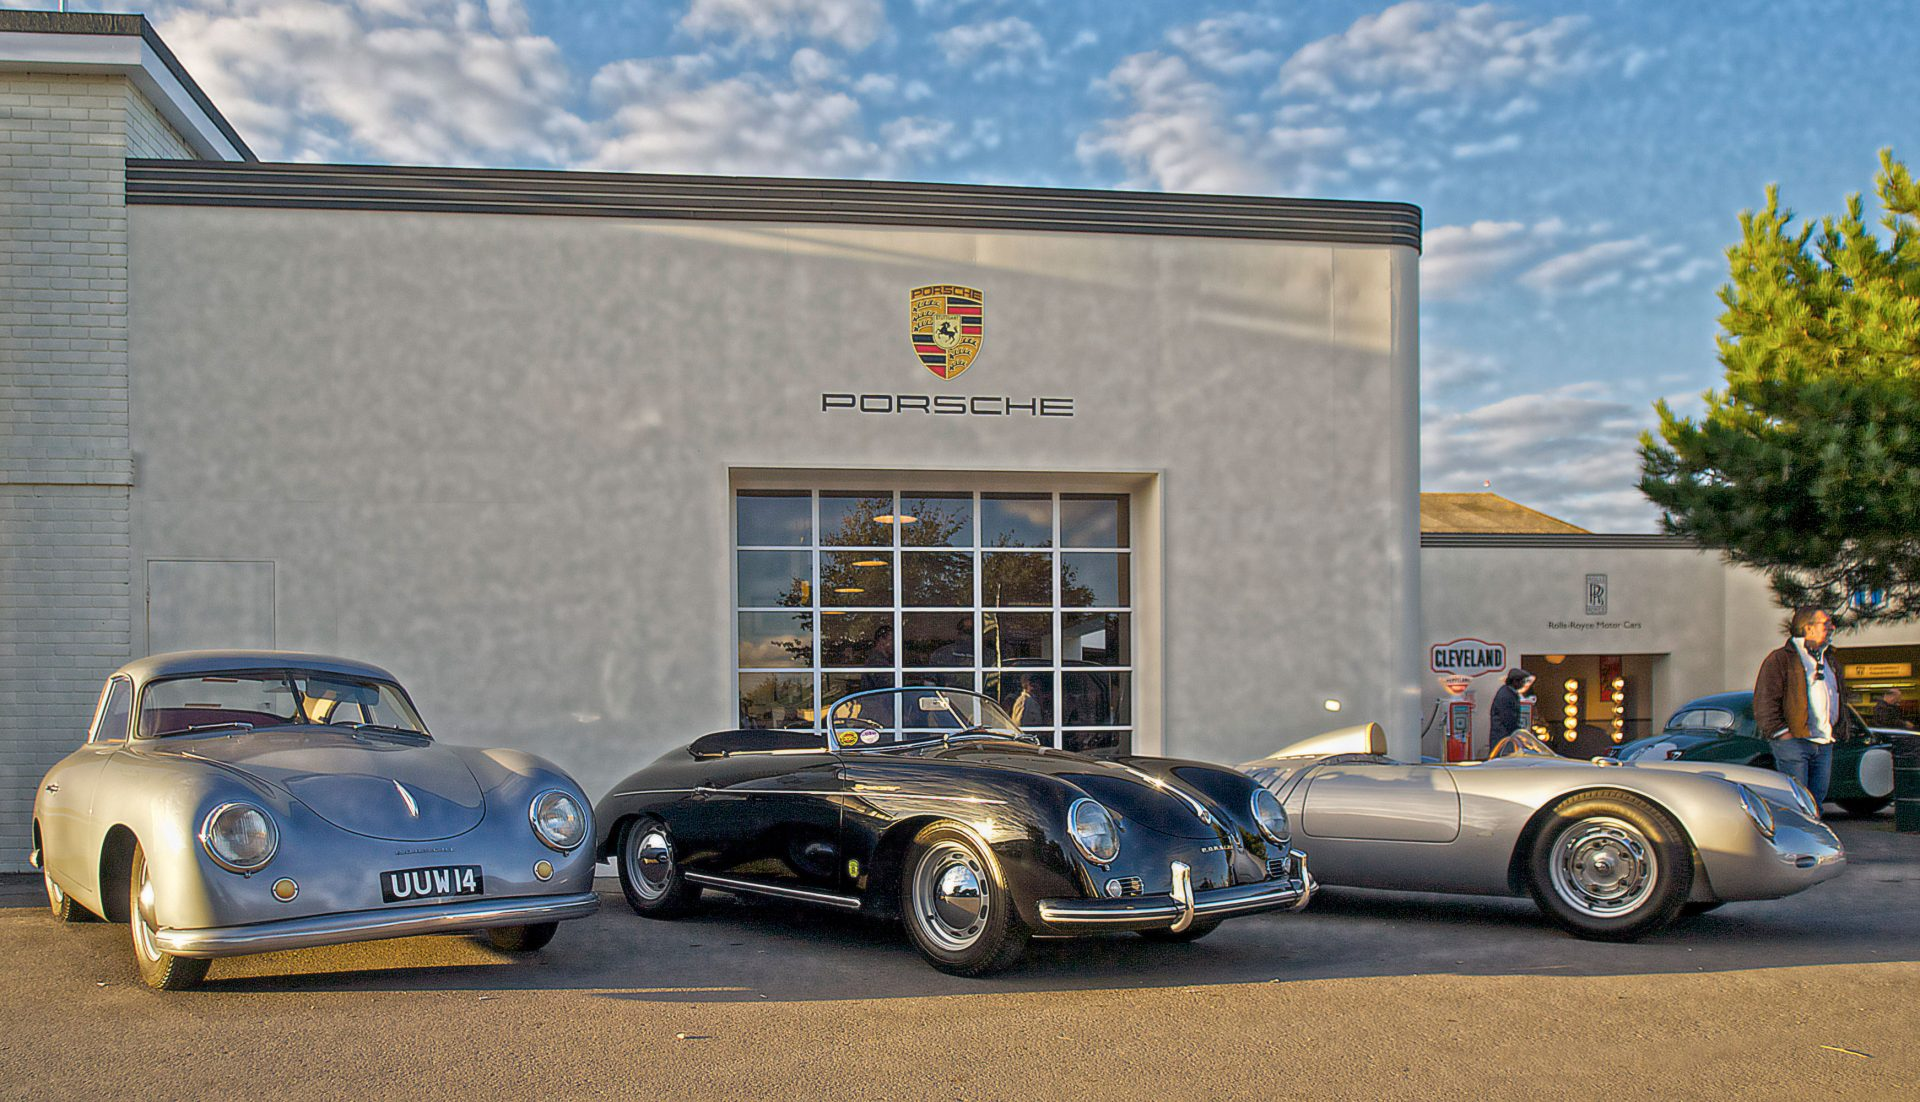 goodwood-porsche